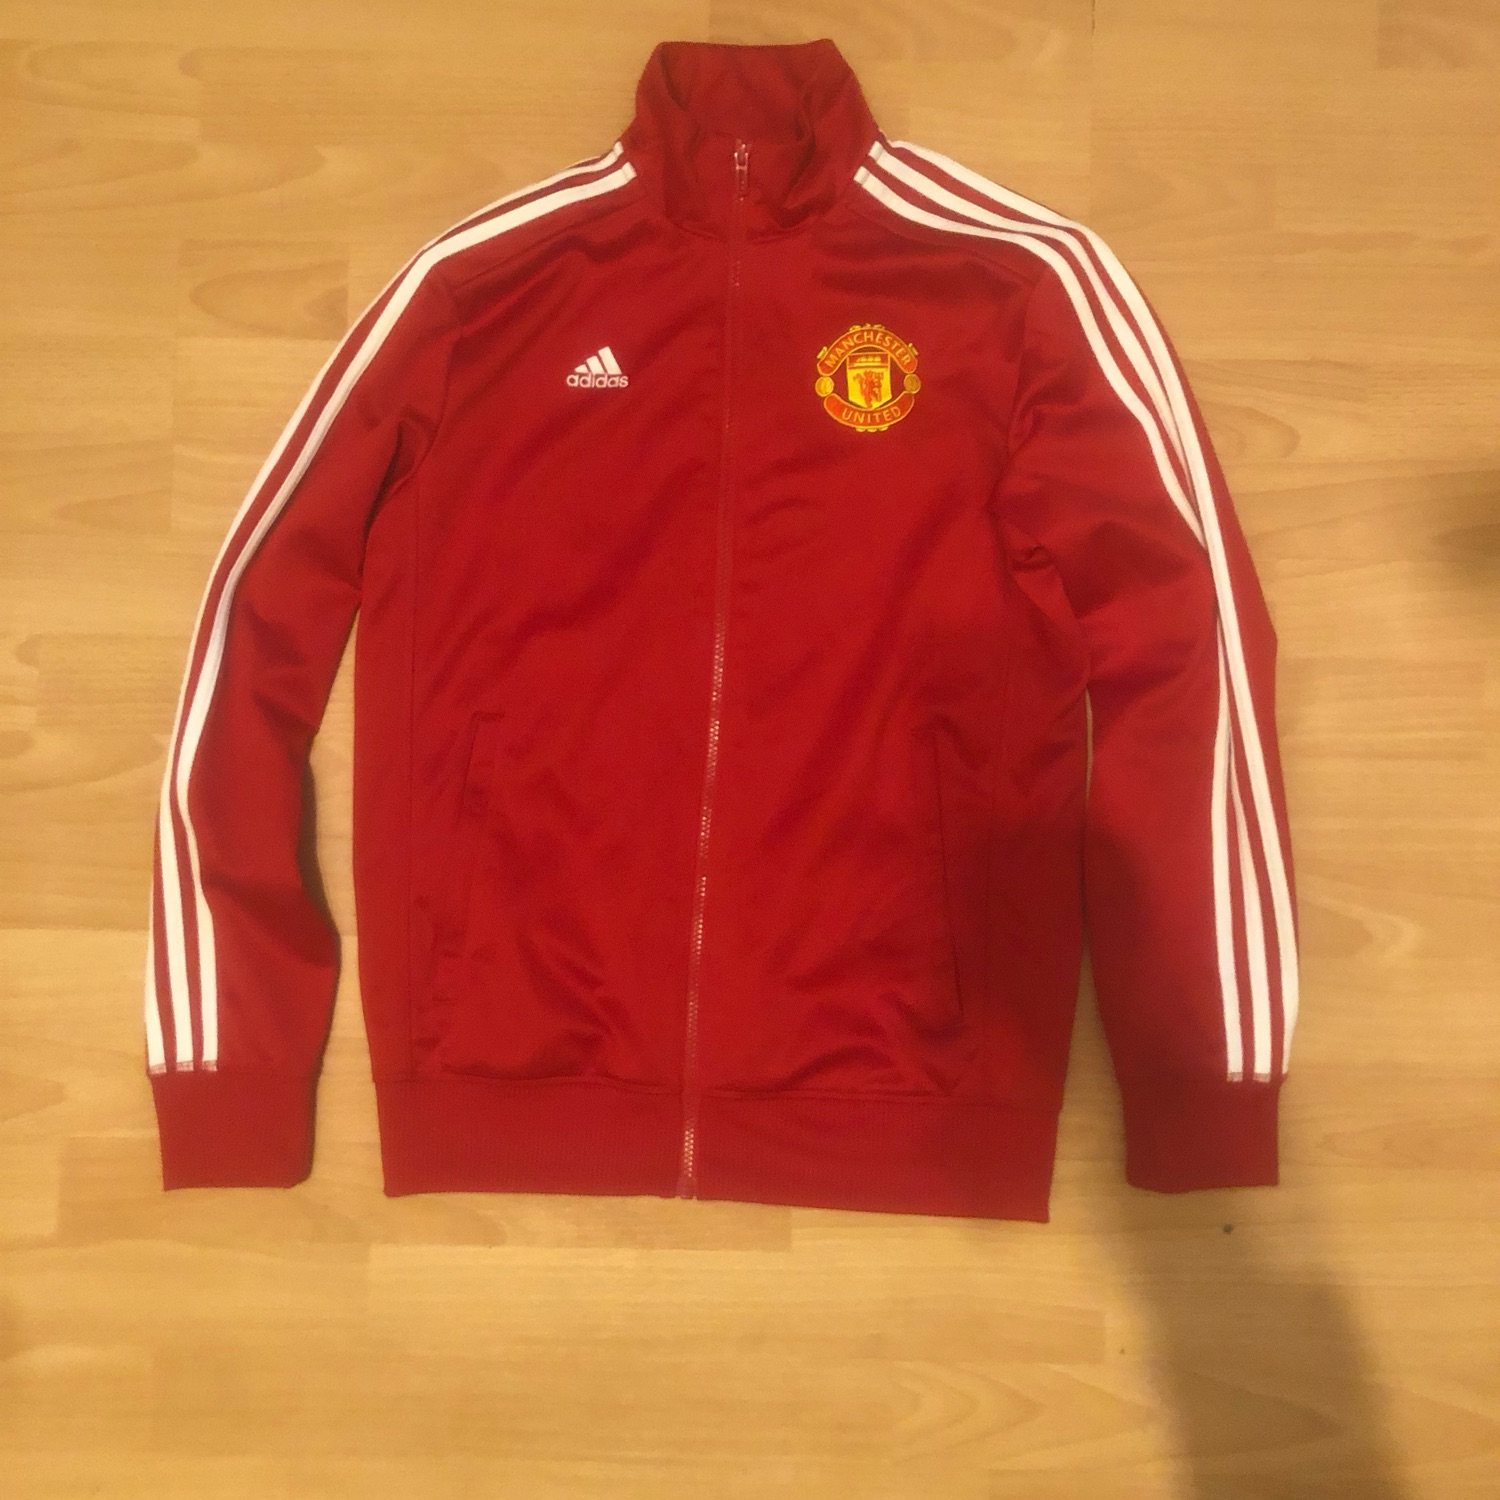 Football Tops And Track Top